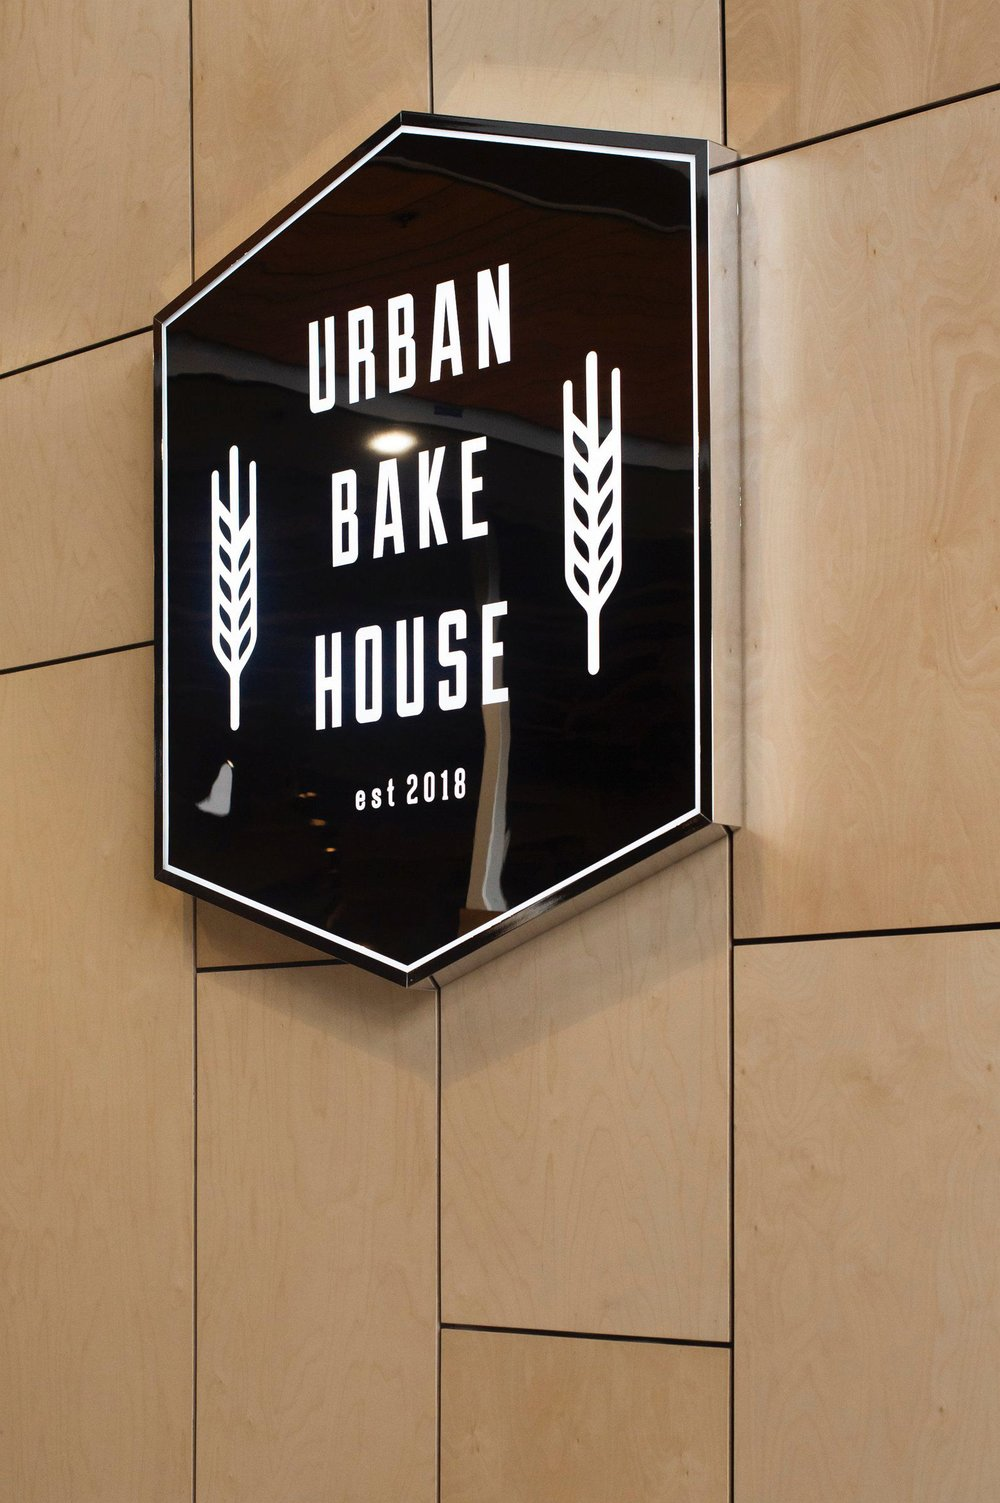 Urban Bake House 8.jpeg